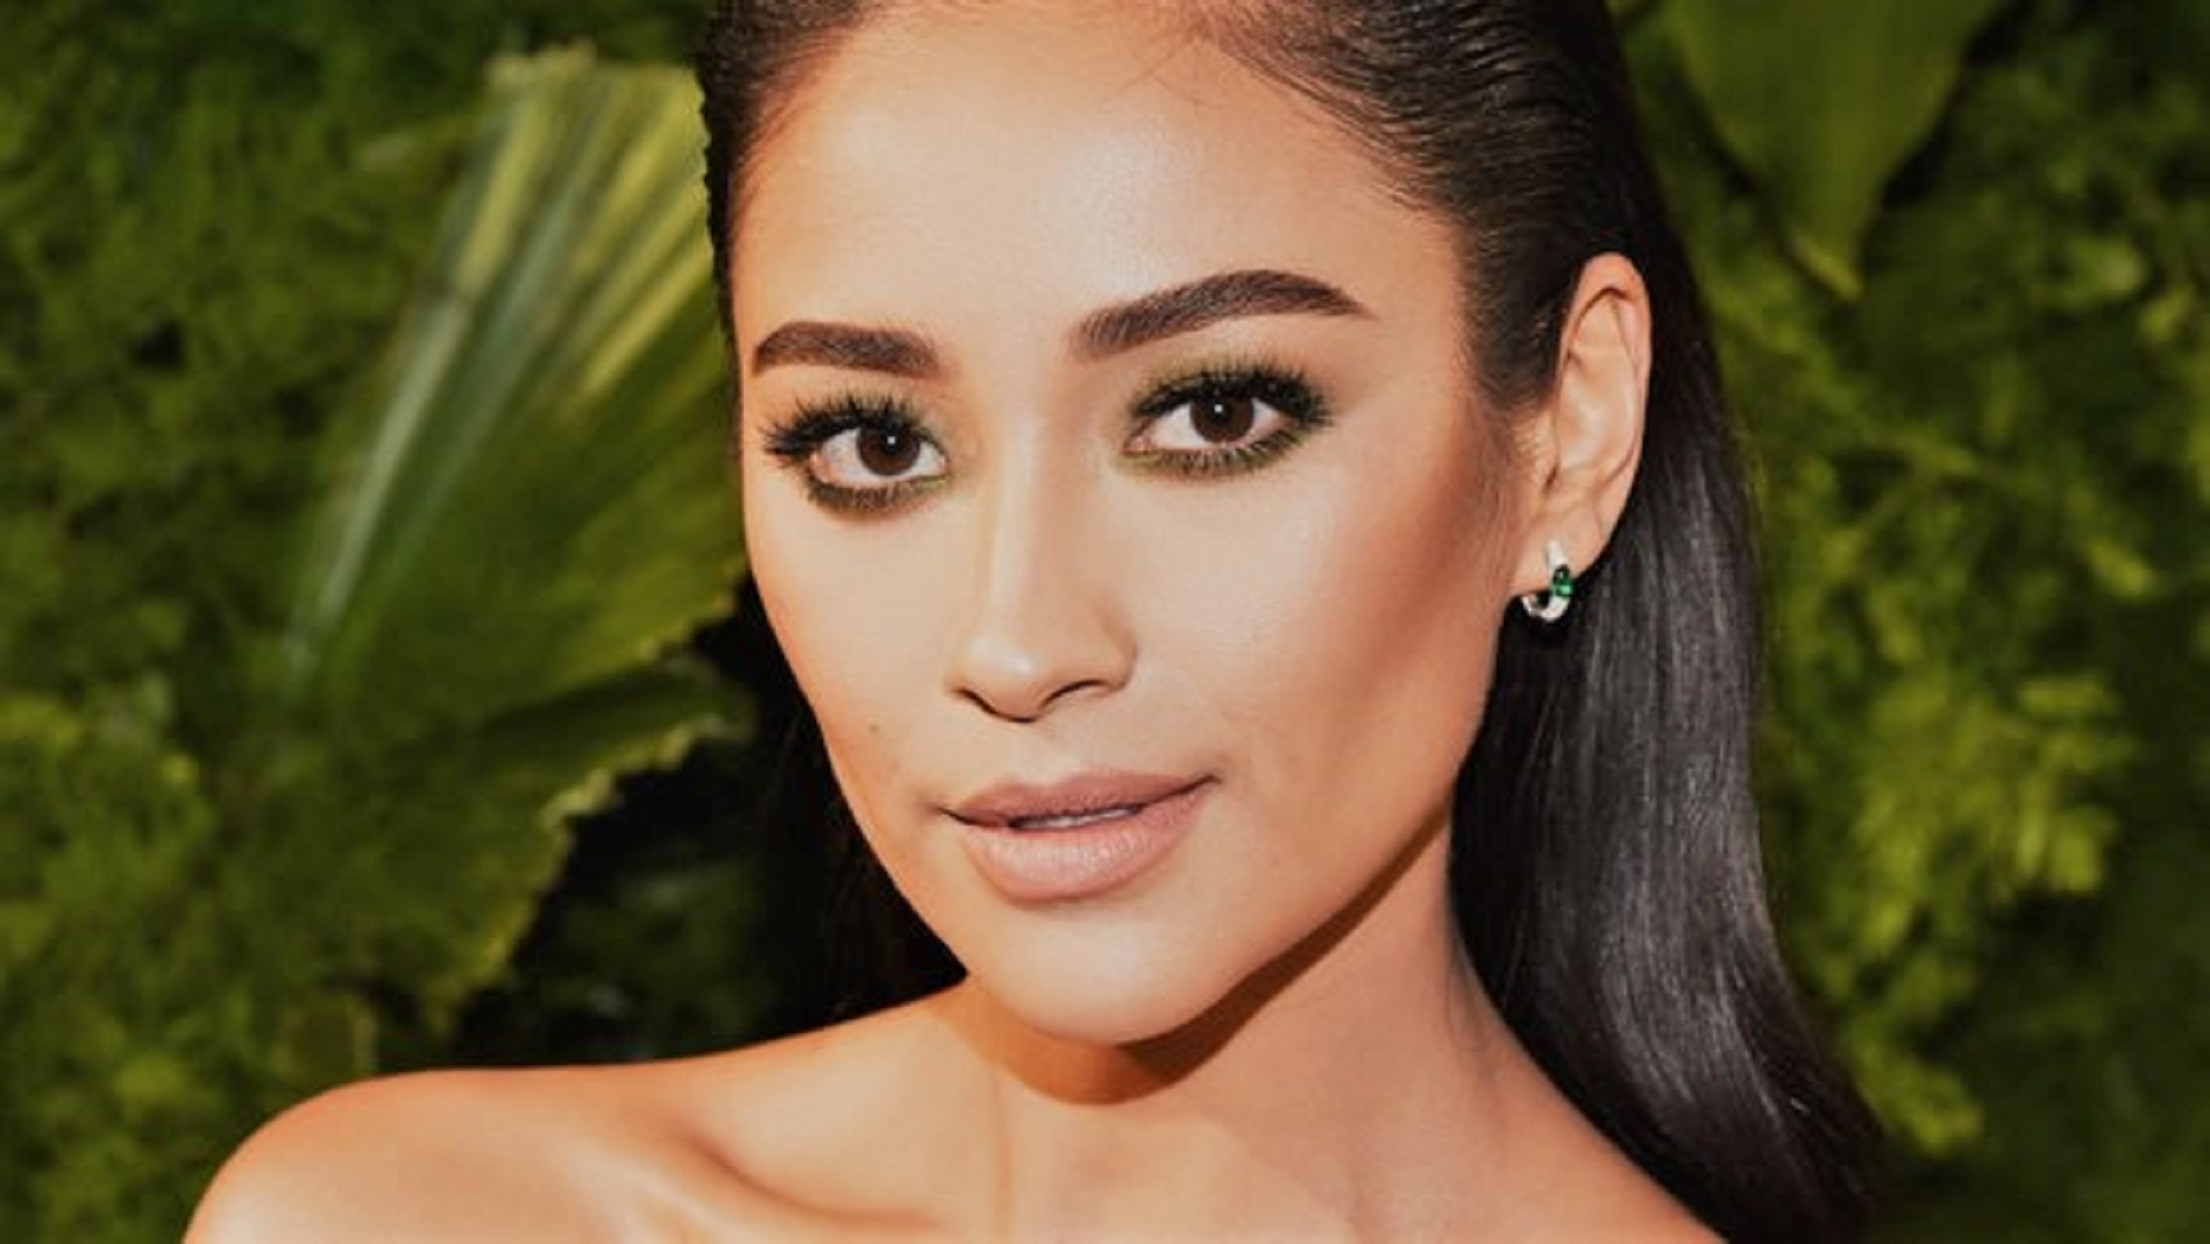 Pregnant Shay Mitchell and Boyfriend Matte Babel Disagree About Using an Epidural During Labor